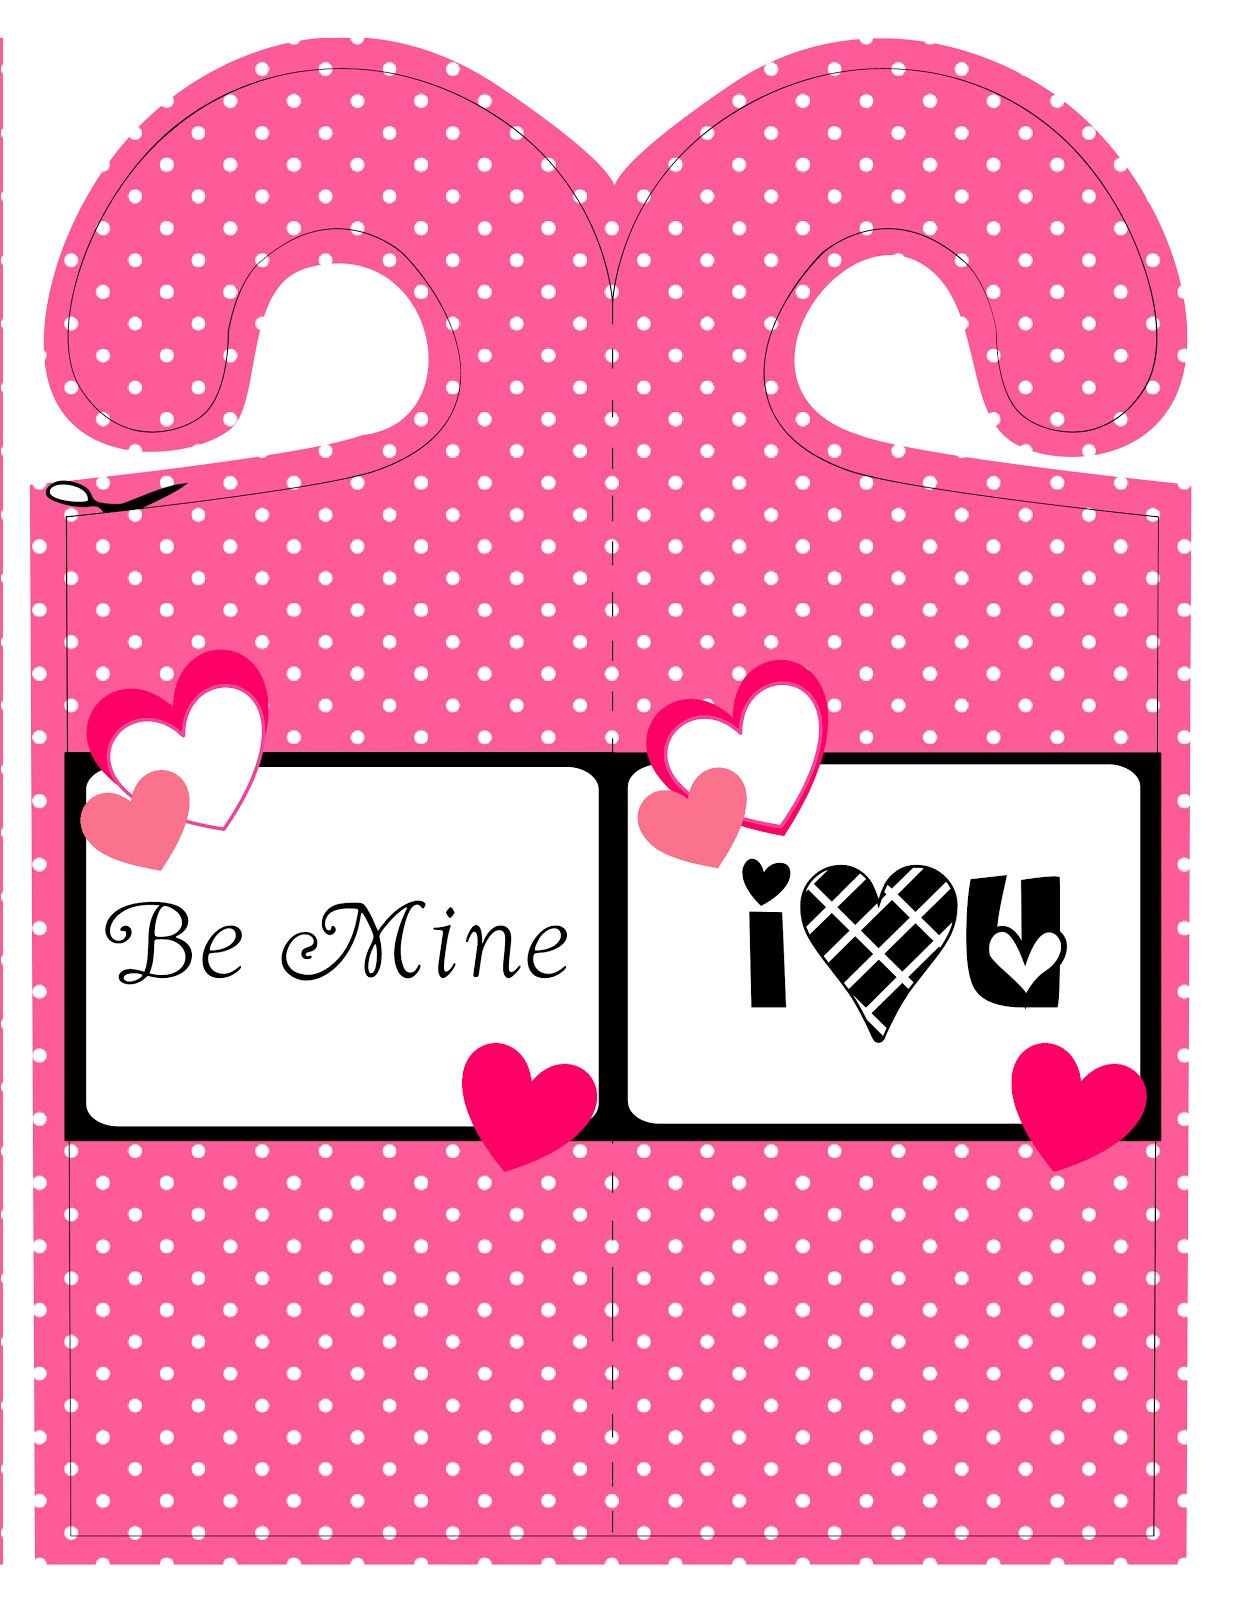 ... Valentine door hanger printables. I just love all the pink and black colors. Have some freebies if you like. Just right click and save as.  sc 1 st  ScrapNteach2 - Blogger & ScrapNteach2: Valentine Door Hanger (free printables)